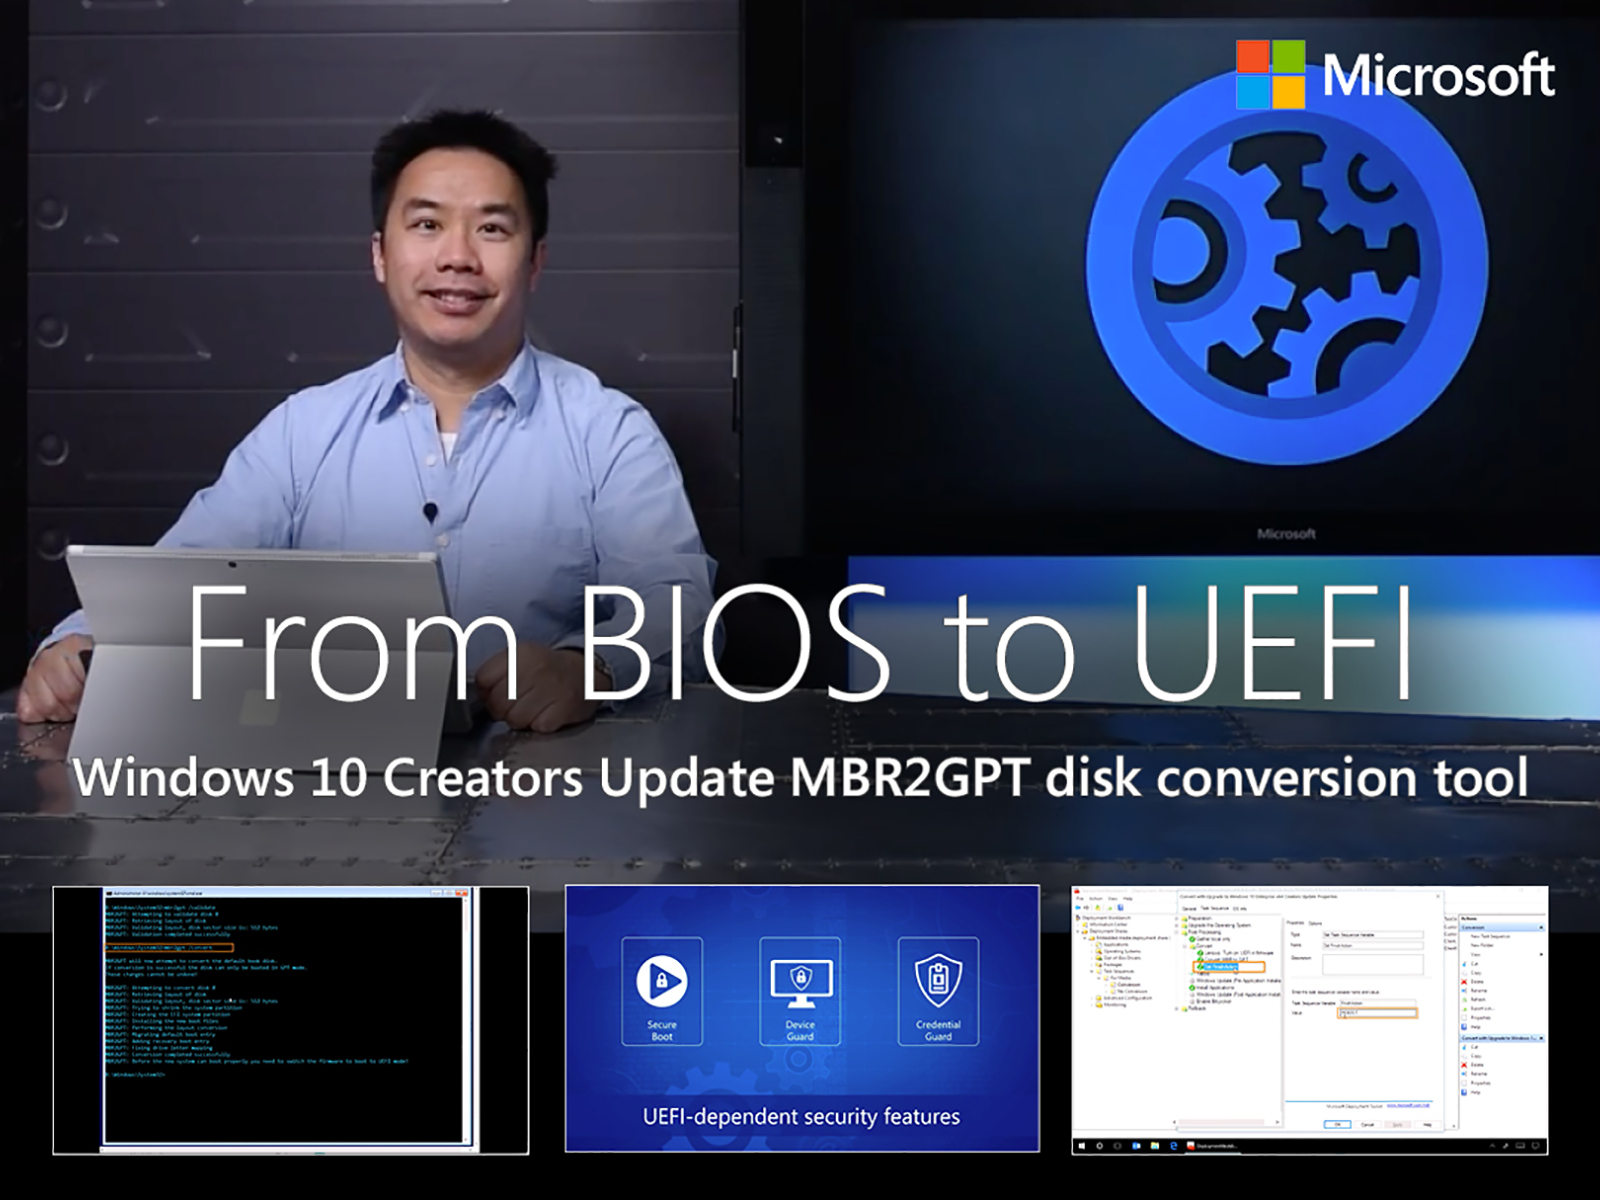 Artwork for Shifting from BIOS to UEFI with the Windows 10 Creators Update MBR2GPT disk conversion tool